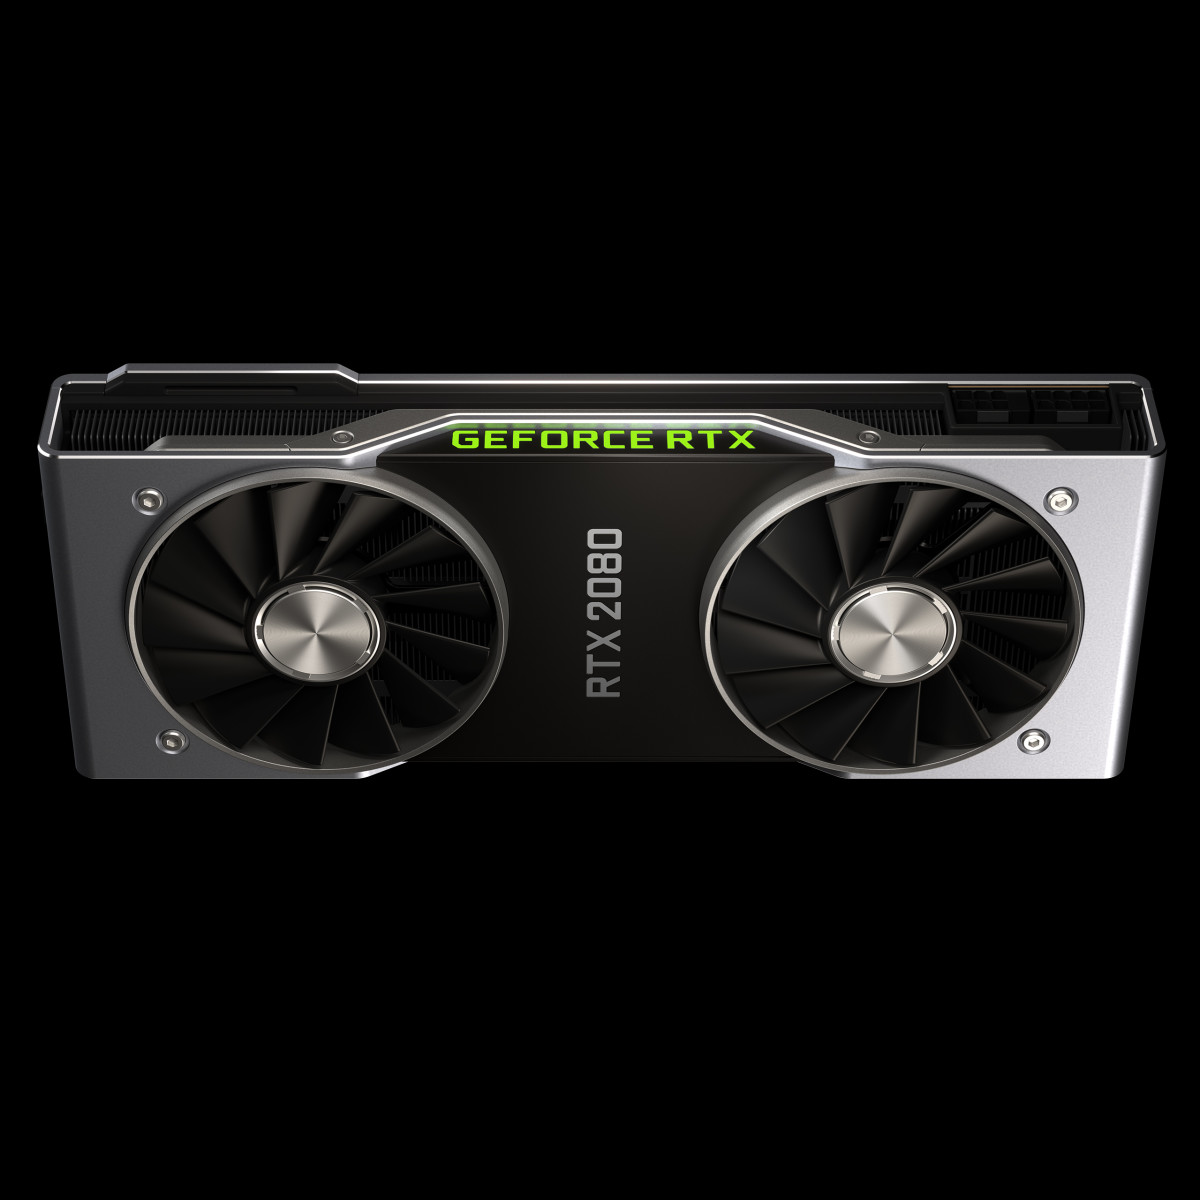 nVidia RTX 2080 vs GTX 1080 Ti Review and Benchmarks